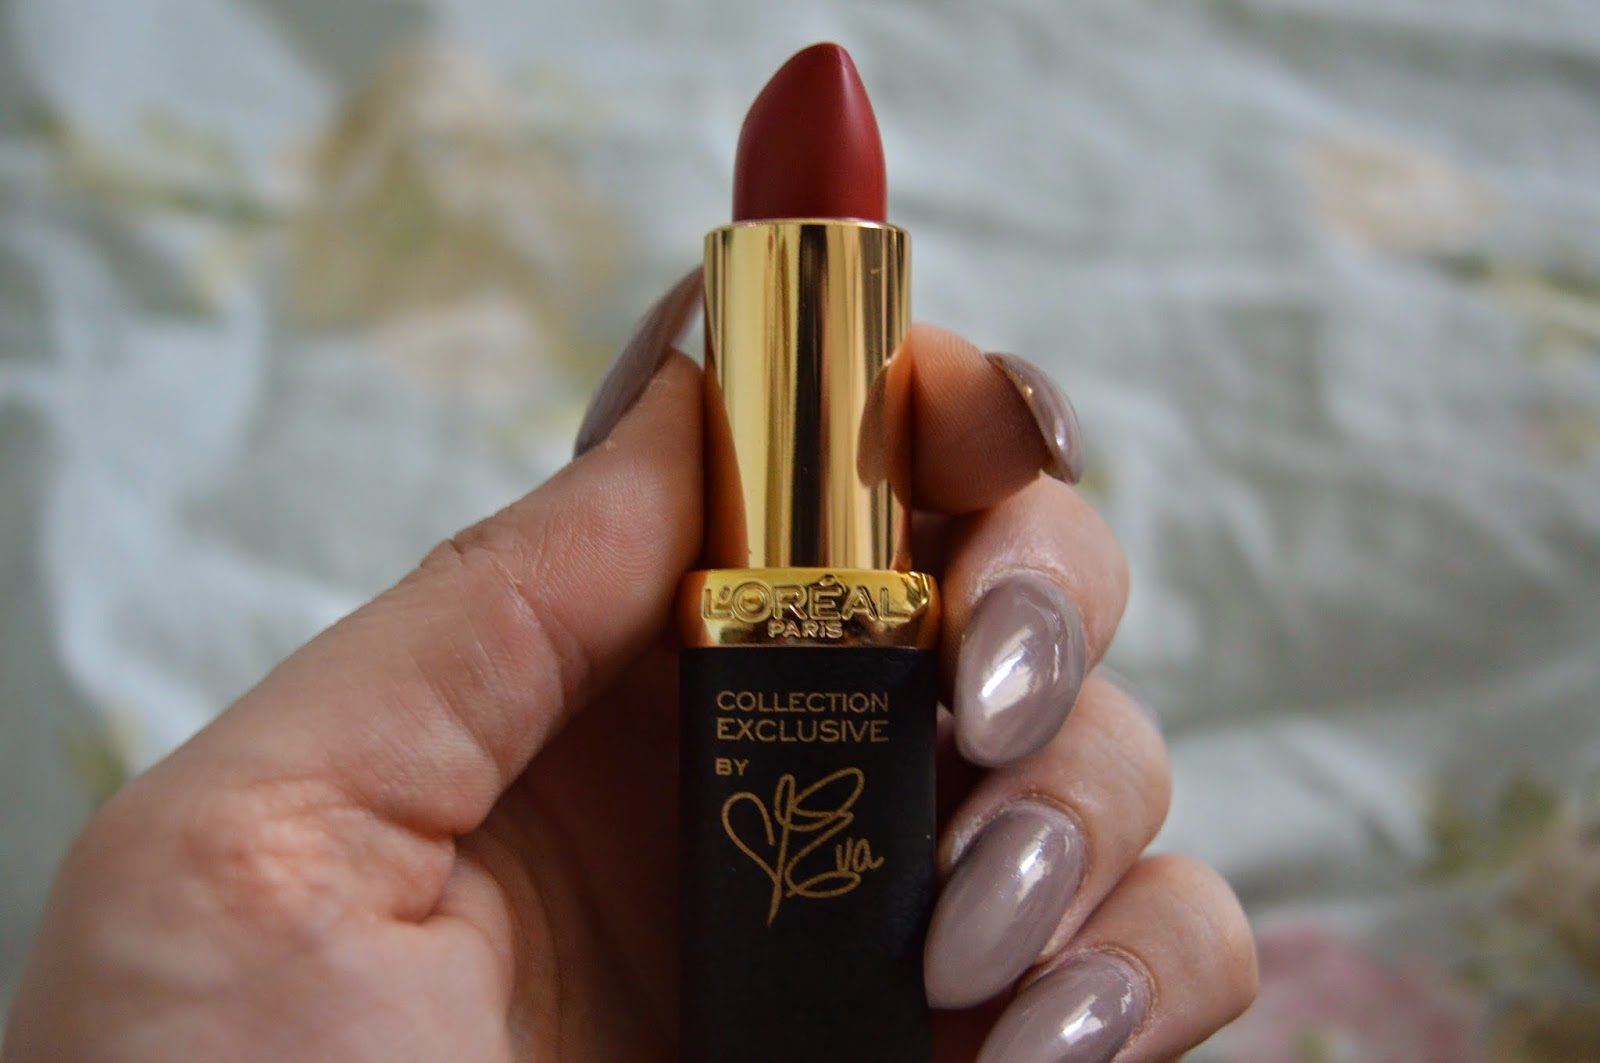 Red lipstick by Eva for L'oreal